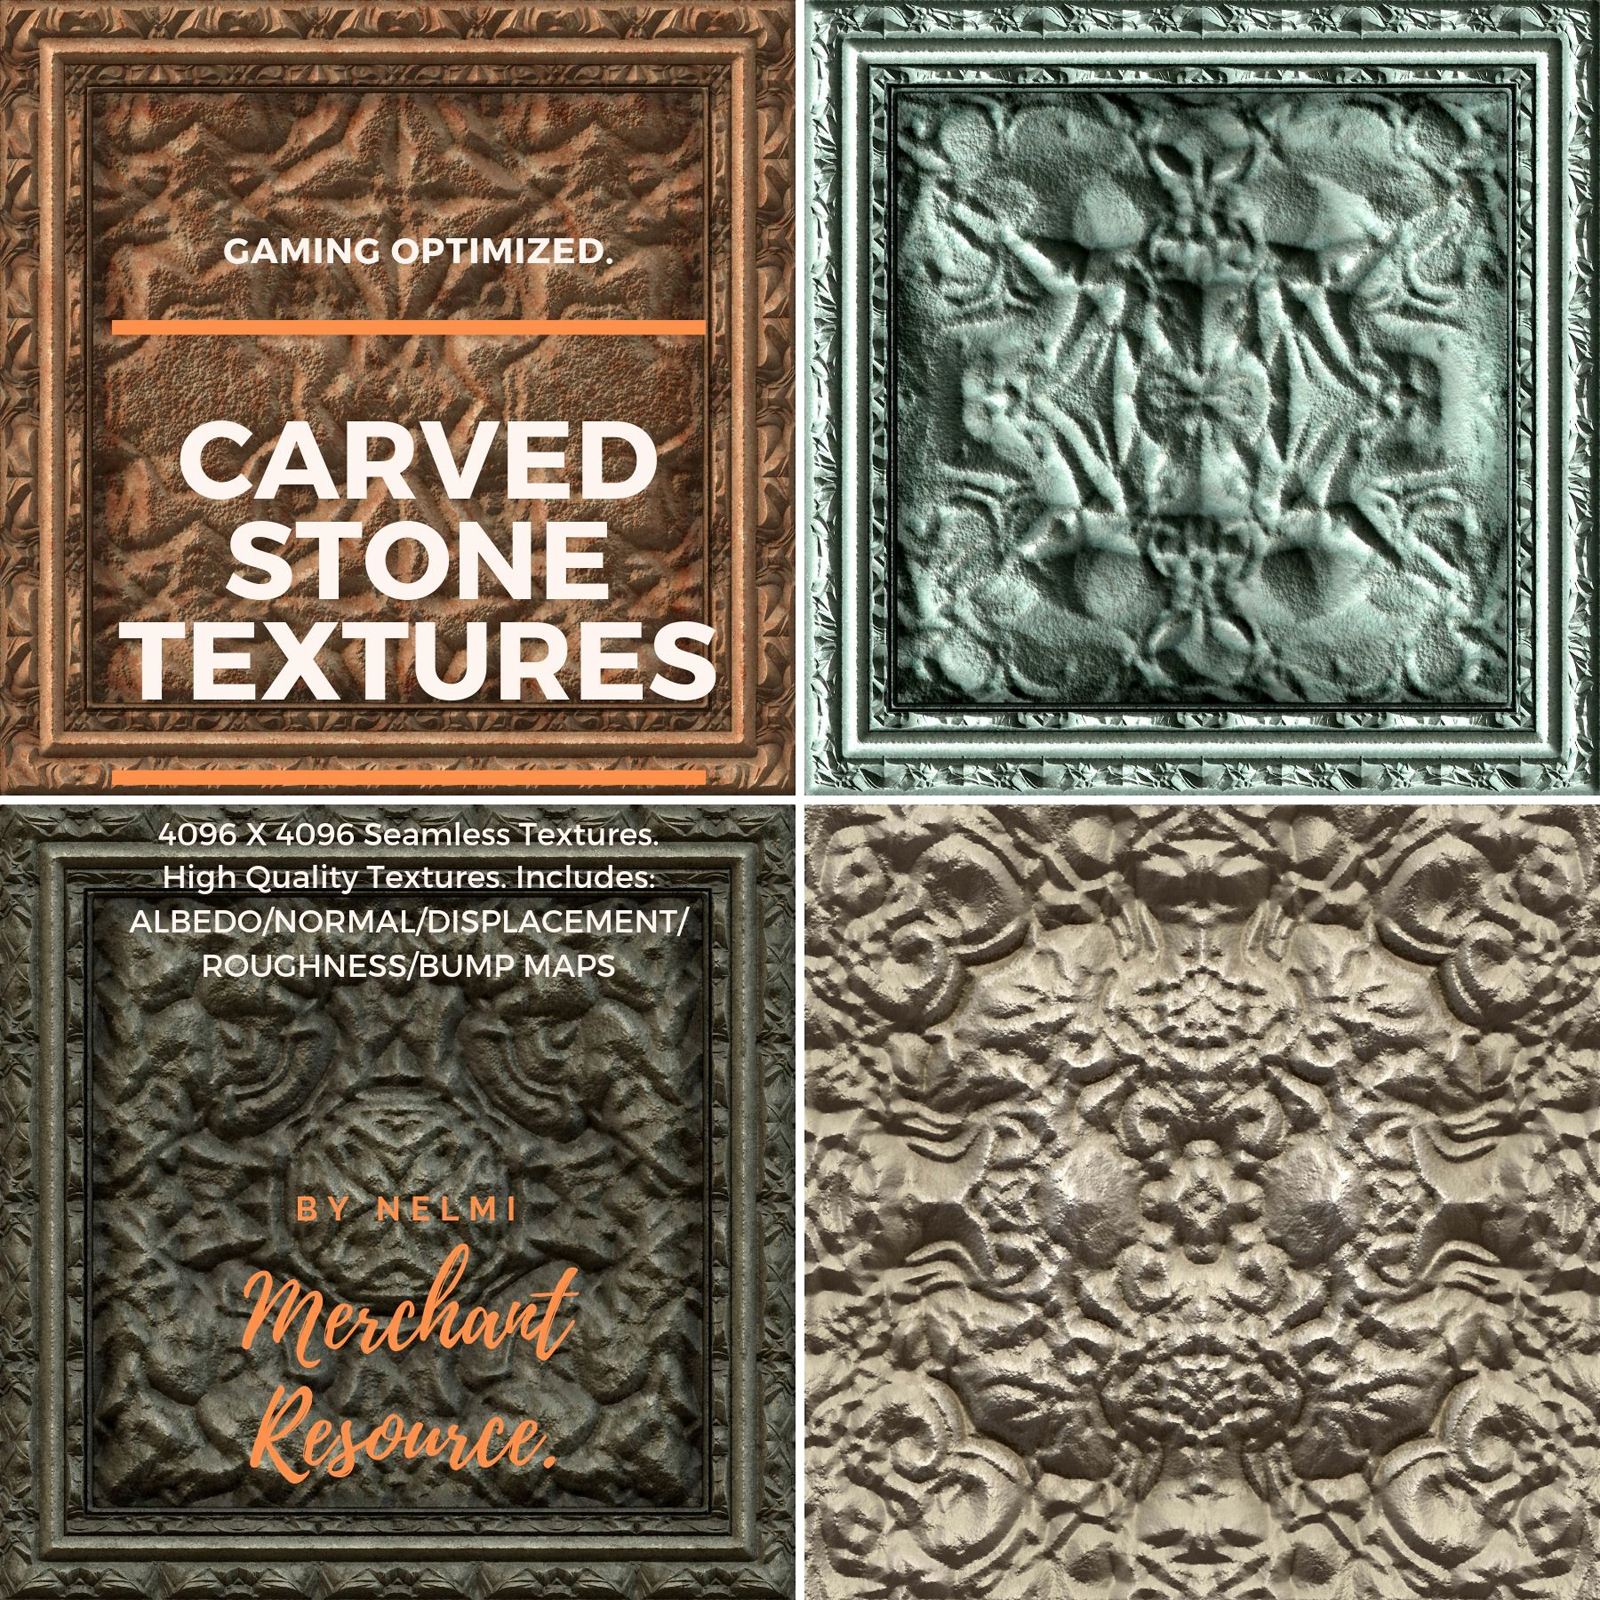 10 Carved Stone Textures - Merchant Resource